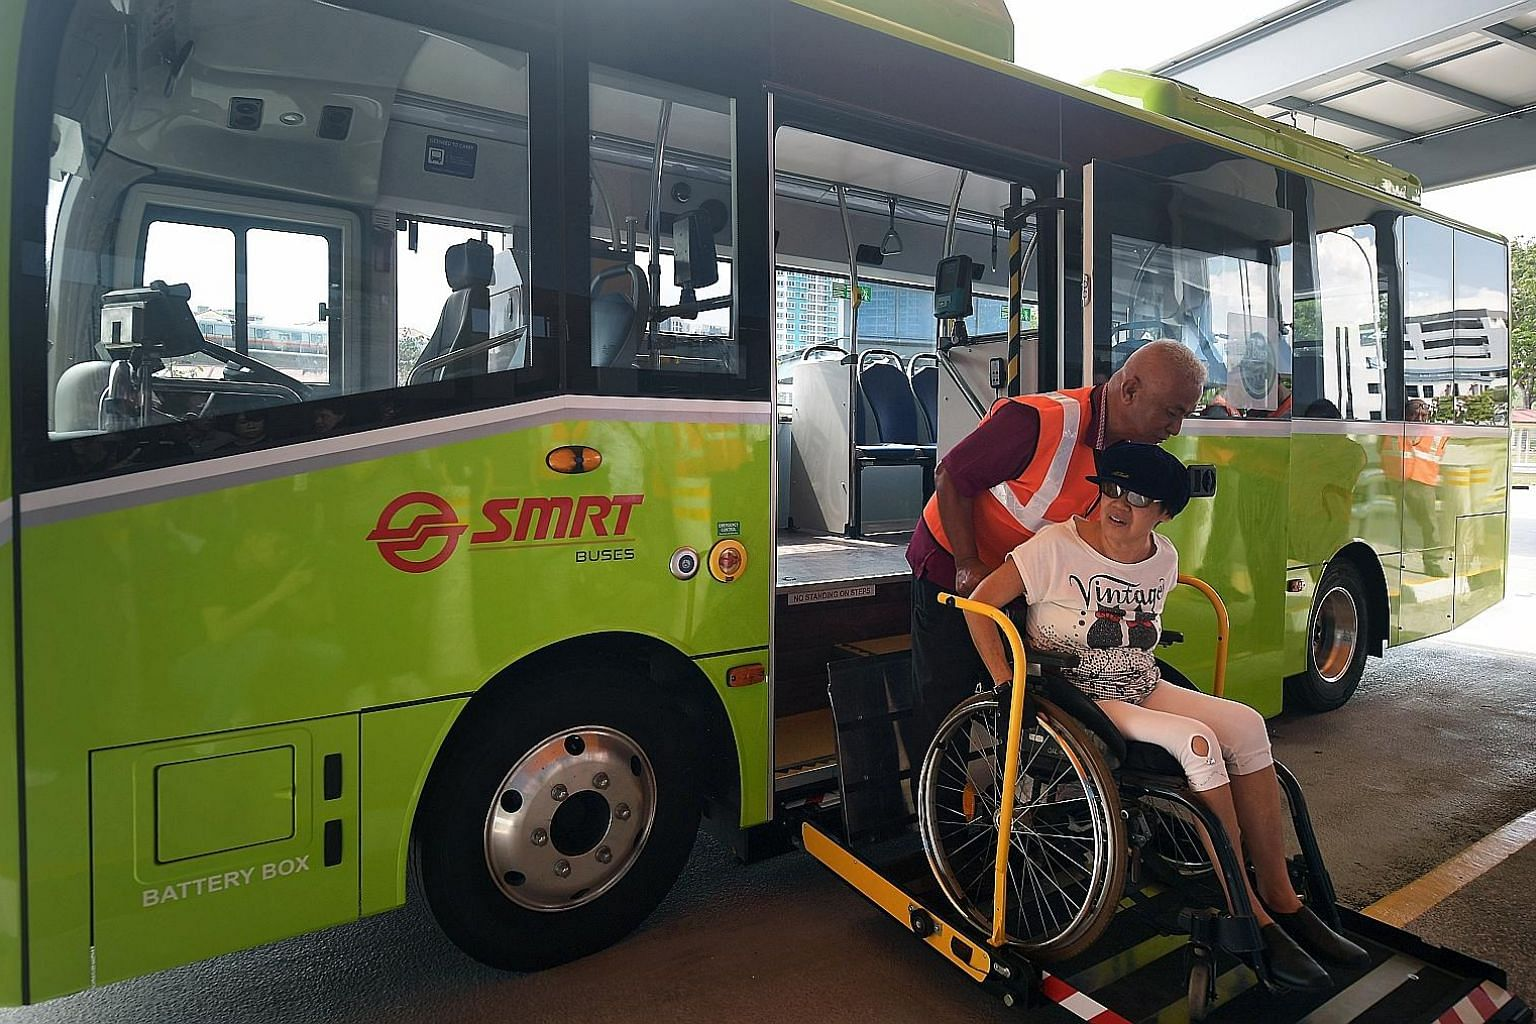 Left: The expanded Yio Chu Kang bus interchange boasts green features, wheelchair-friendly boarding points and more bicycle parking spaces. Above: Ms Wendy Tan boarding service 825's new electric minibus with the help of bus captain Ramli Khamis yest